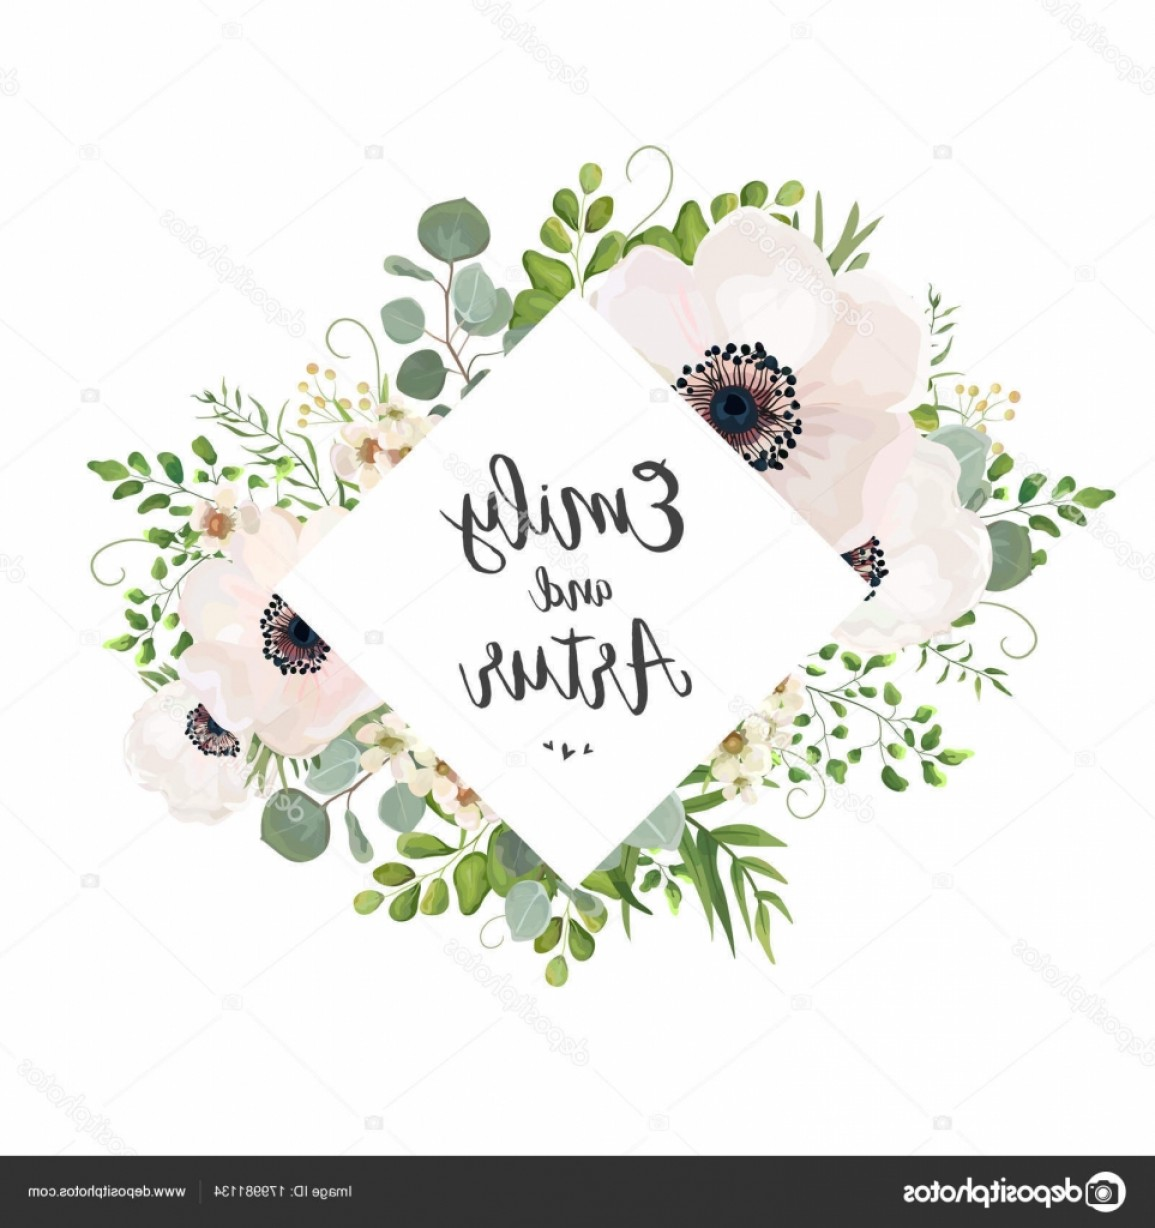 Rustic Wedding Invitation Vector: Stock Illustration Vector Floral Wedding Invite Card